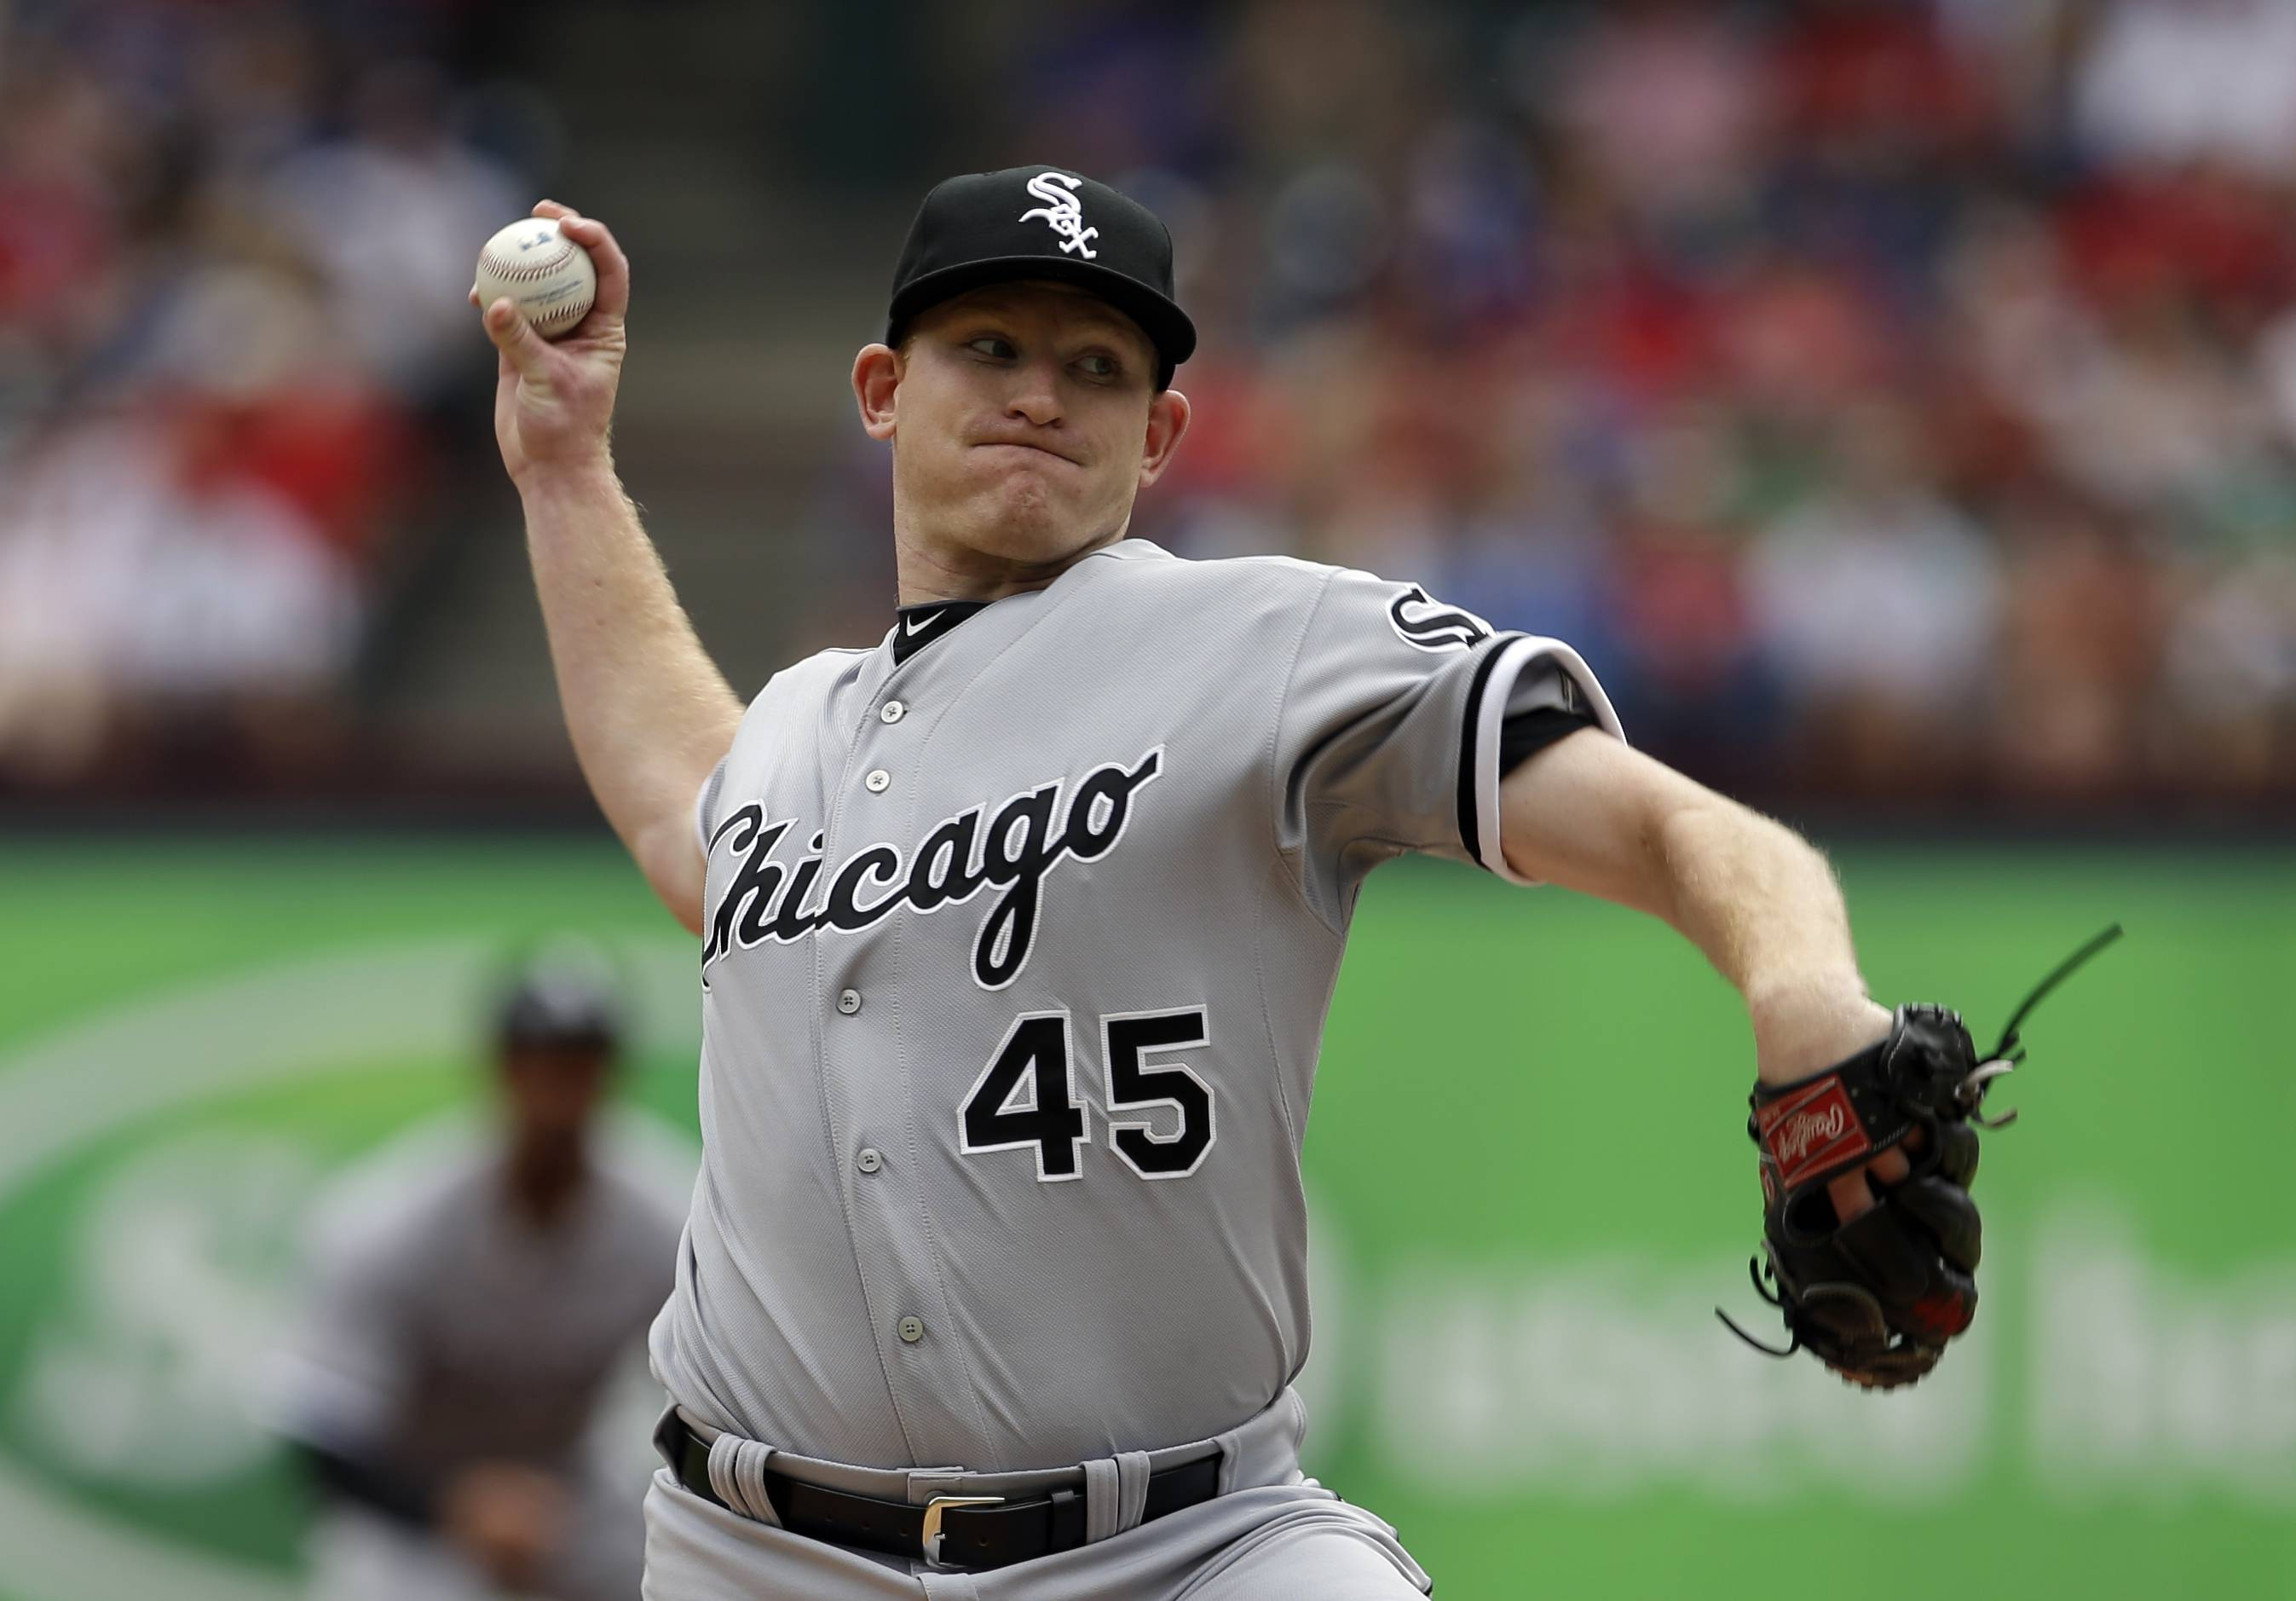 Starting pitcher Erik Johnson was a big disappointment in April, but he could find himself back in a White Sox rotation short on right-handers.